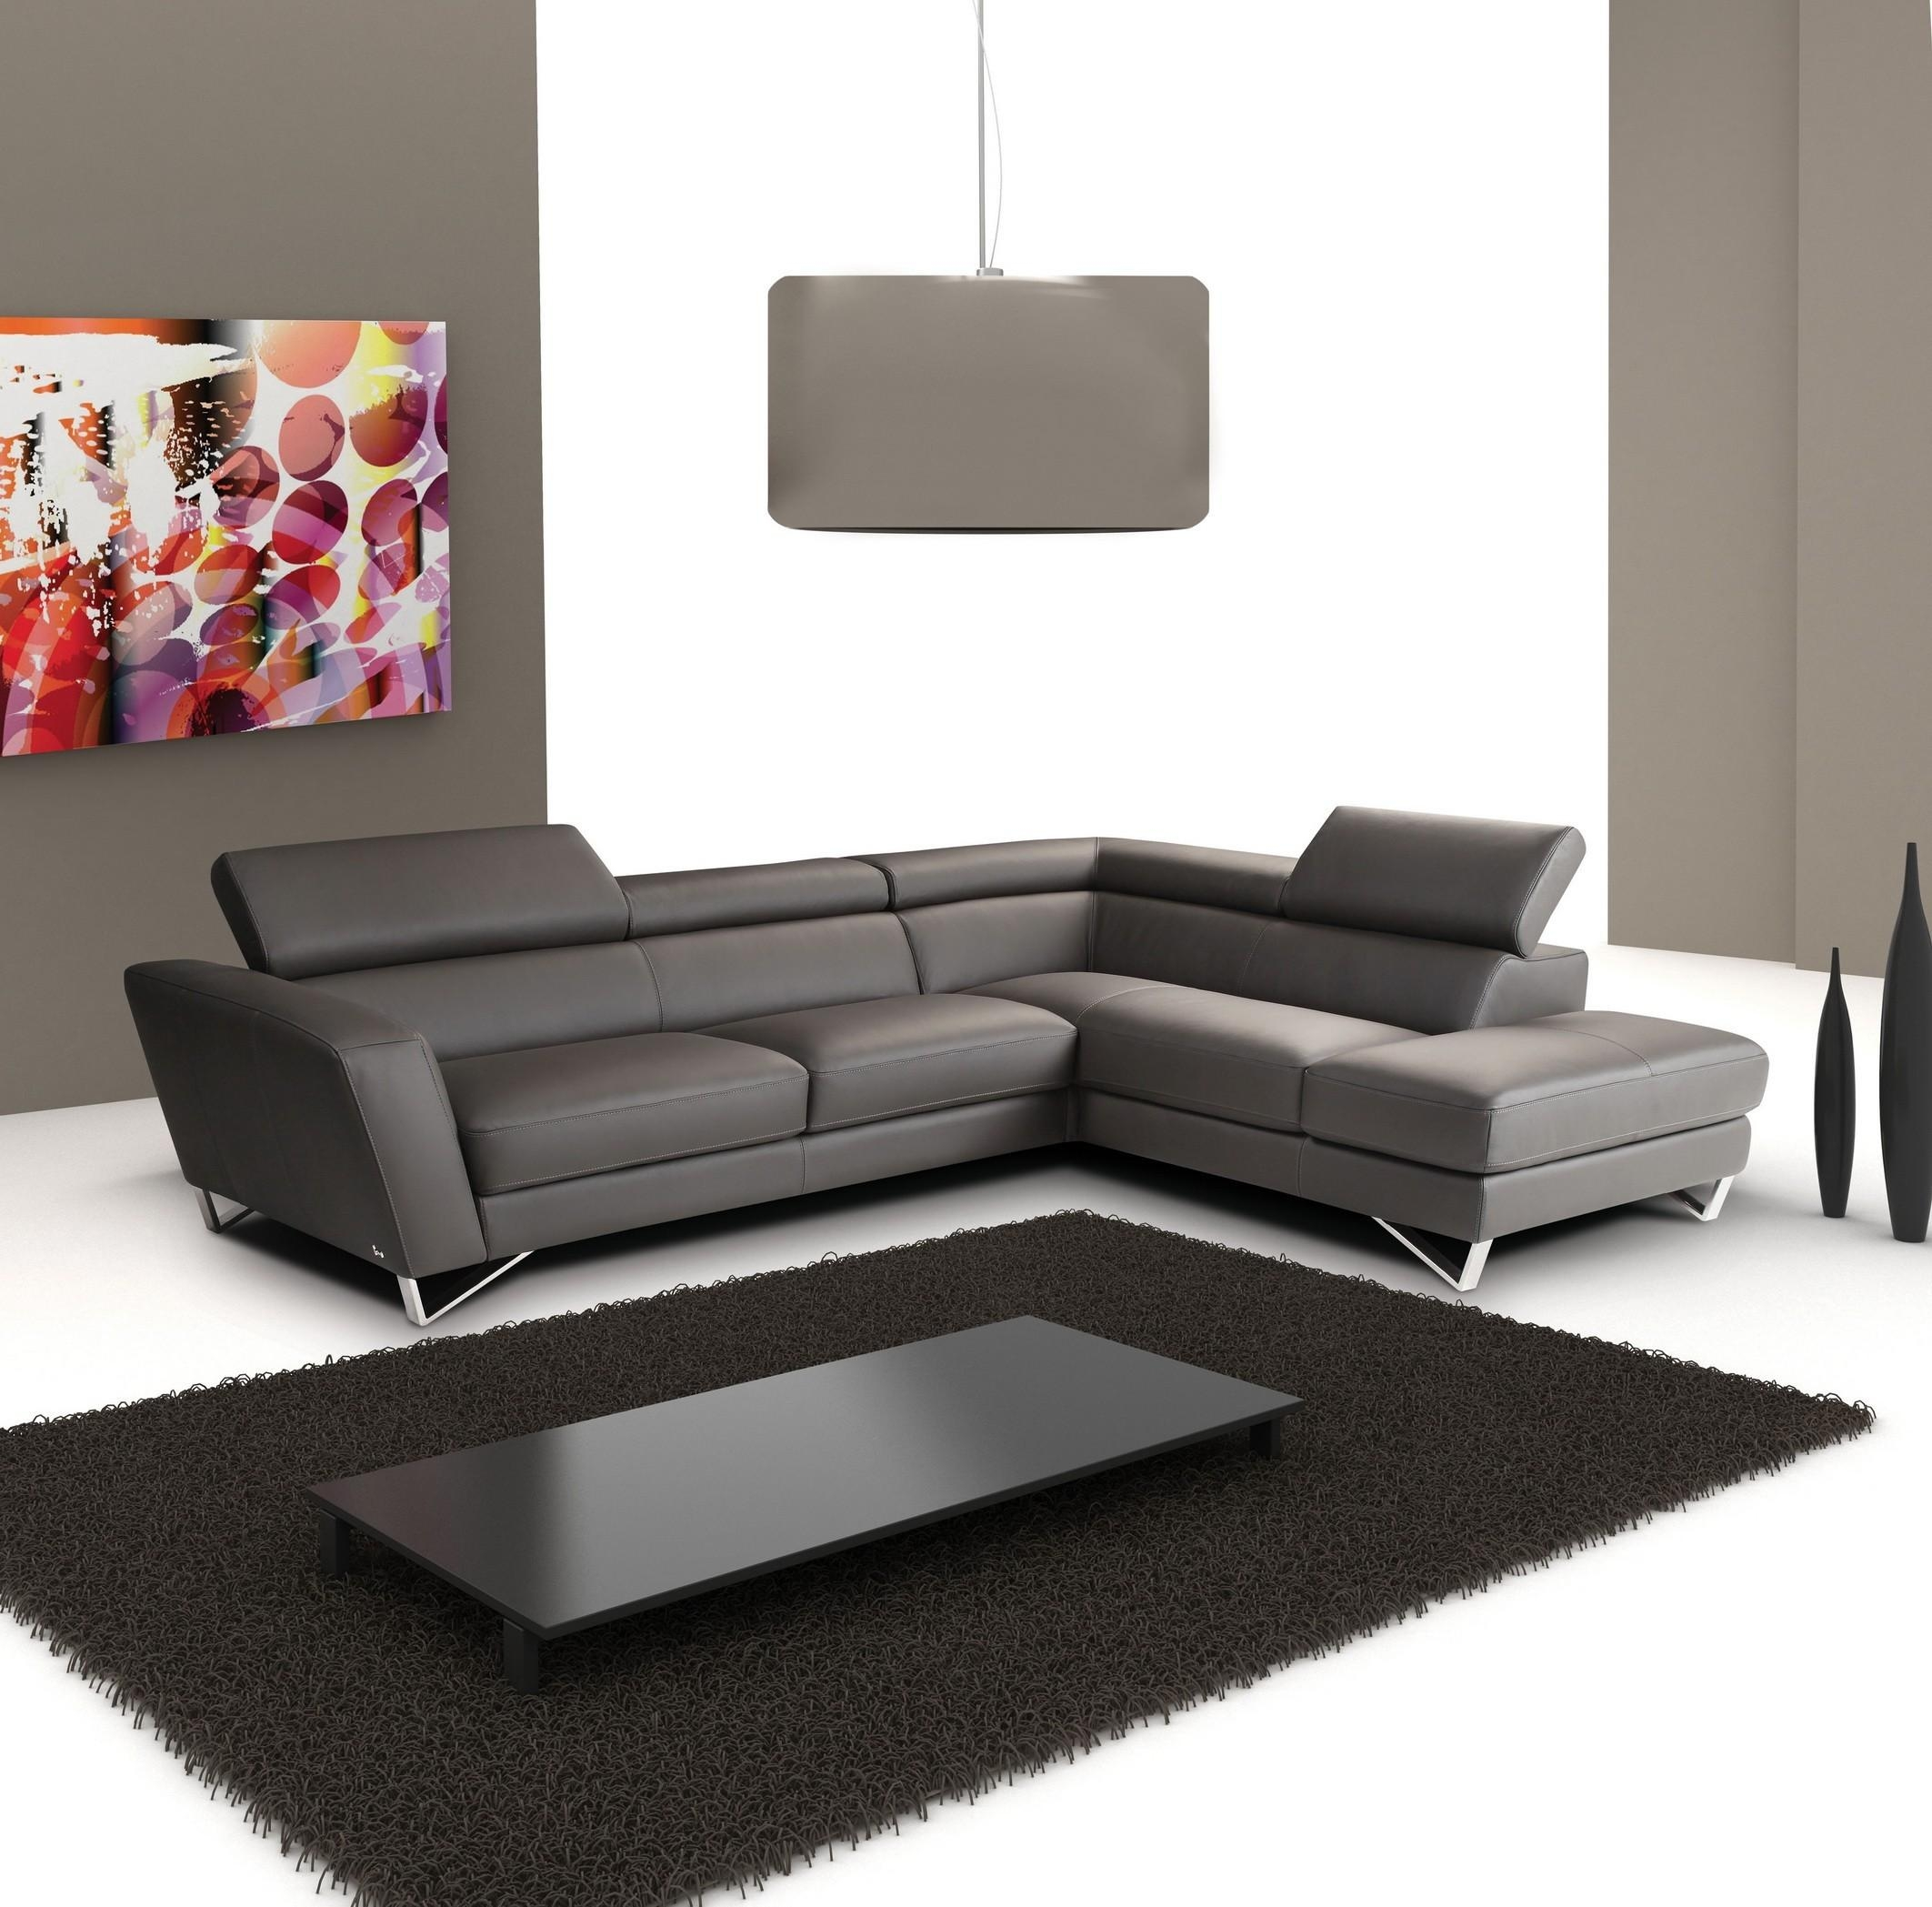 Furniture: Amusing Furniture Decorated L Shaped Sleeper Sofa For Within Corner Sleeper Sofas (View 3 of 20)